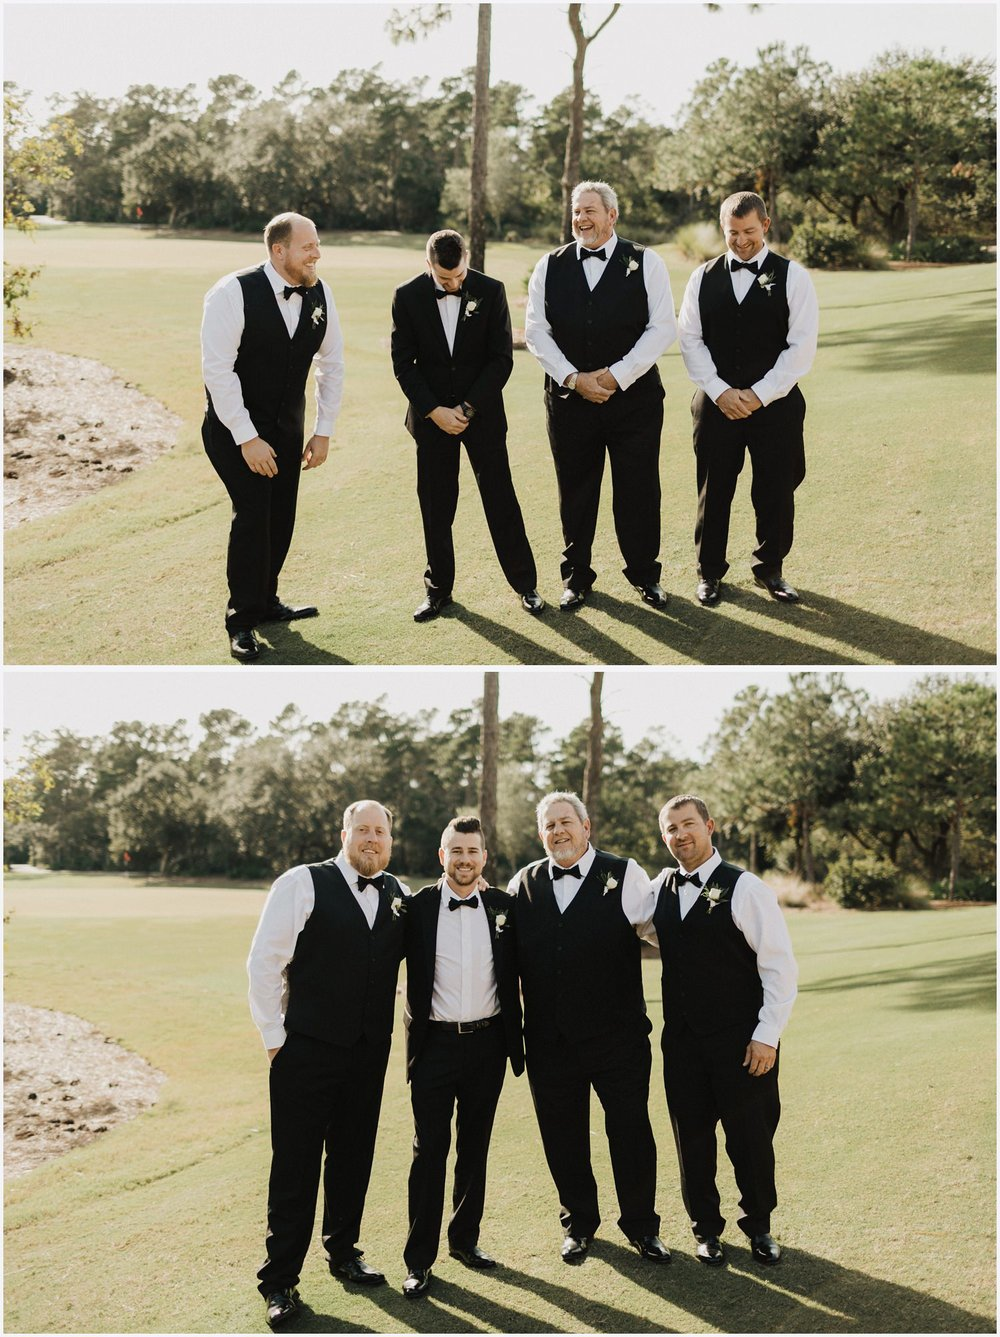 Groom and his groomsmen at the Shark's Tooth Golf Club